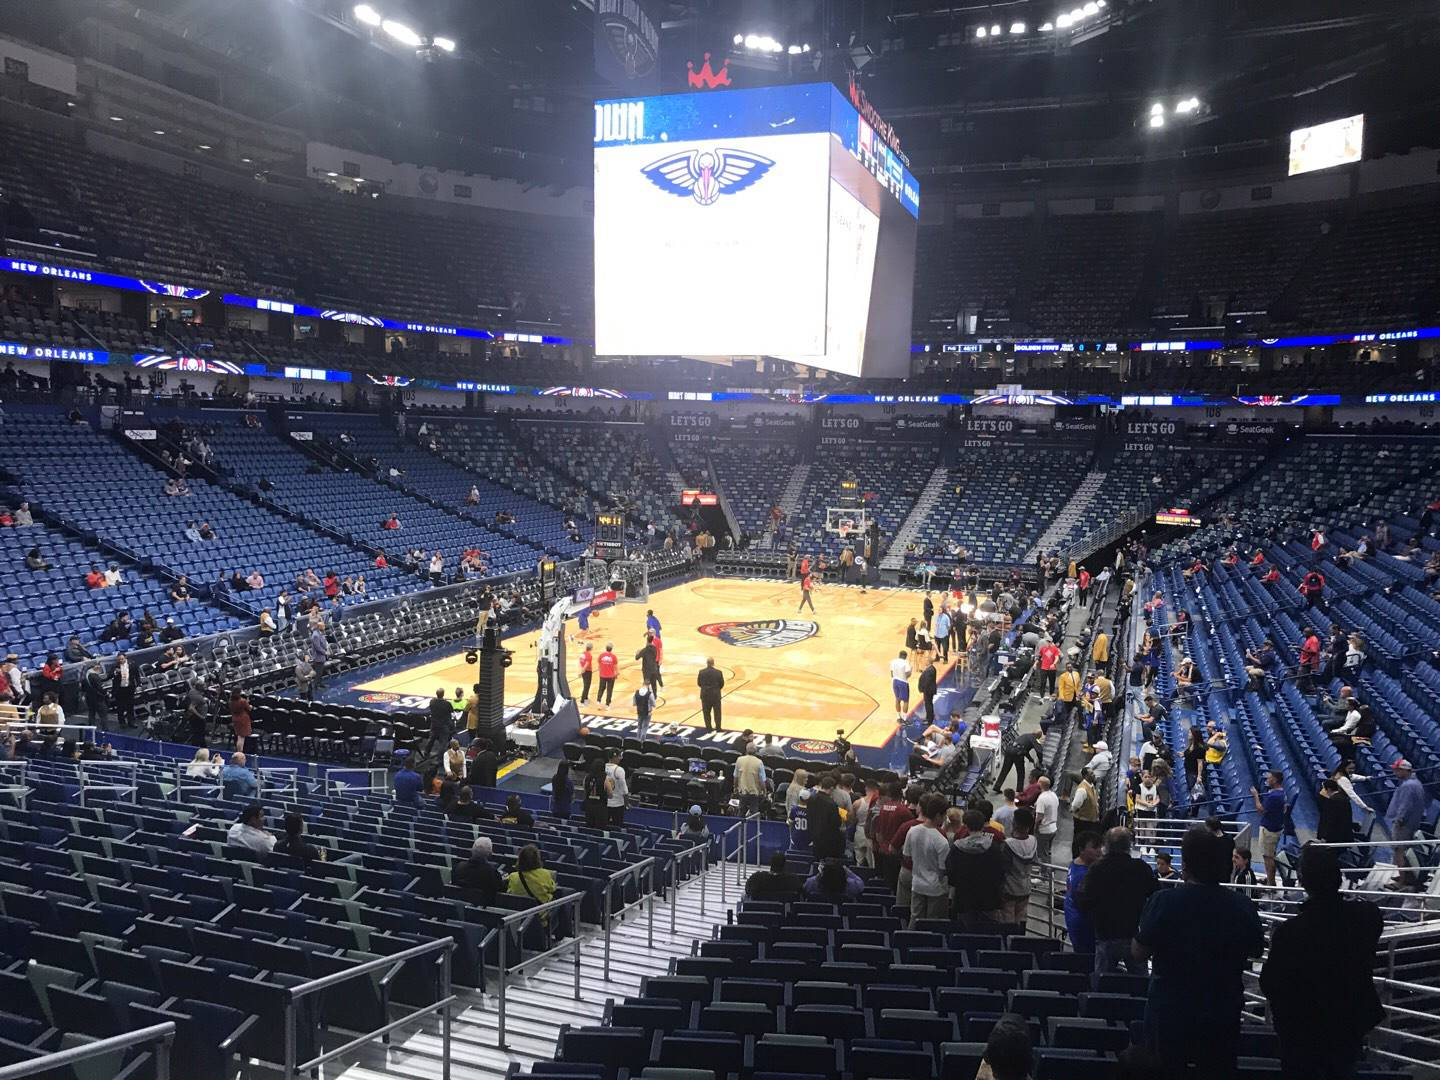 Smoothie King Center Section 117 Row 23 Seat 16